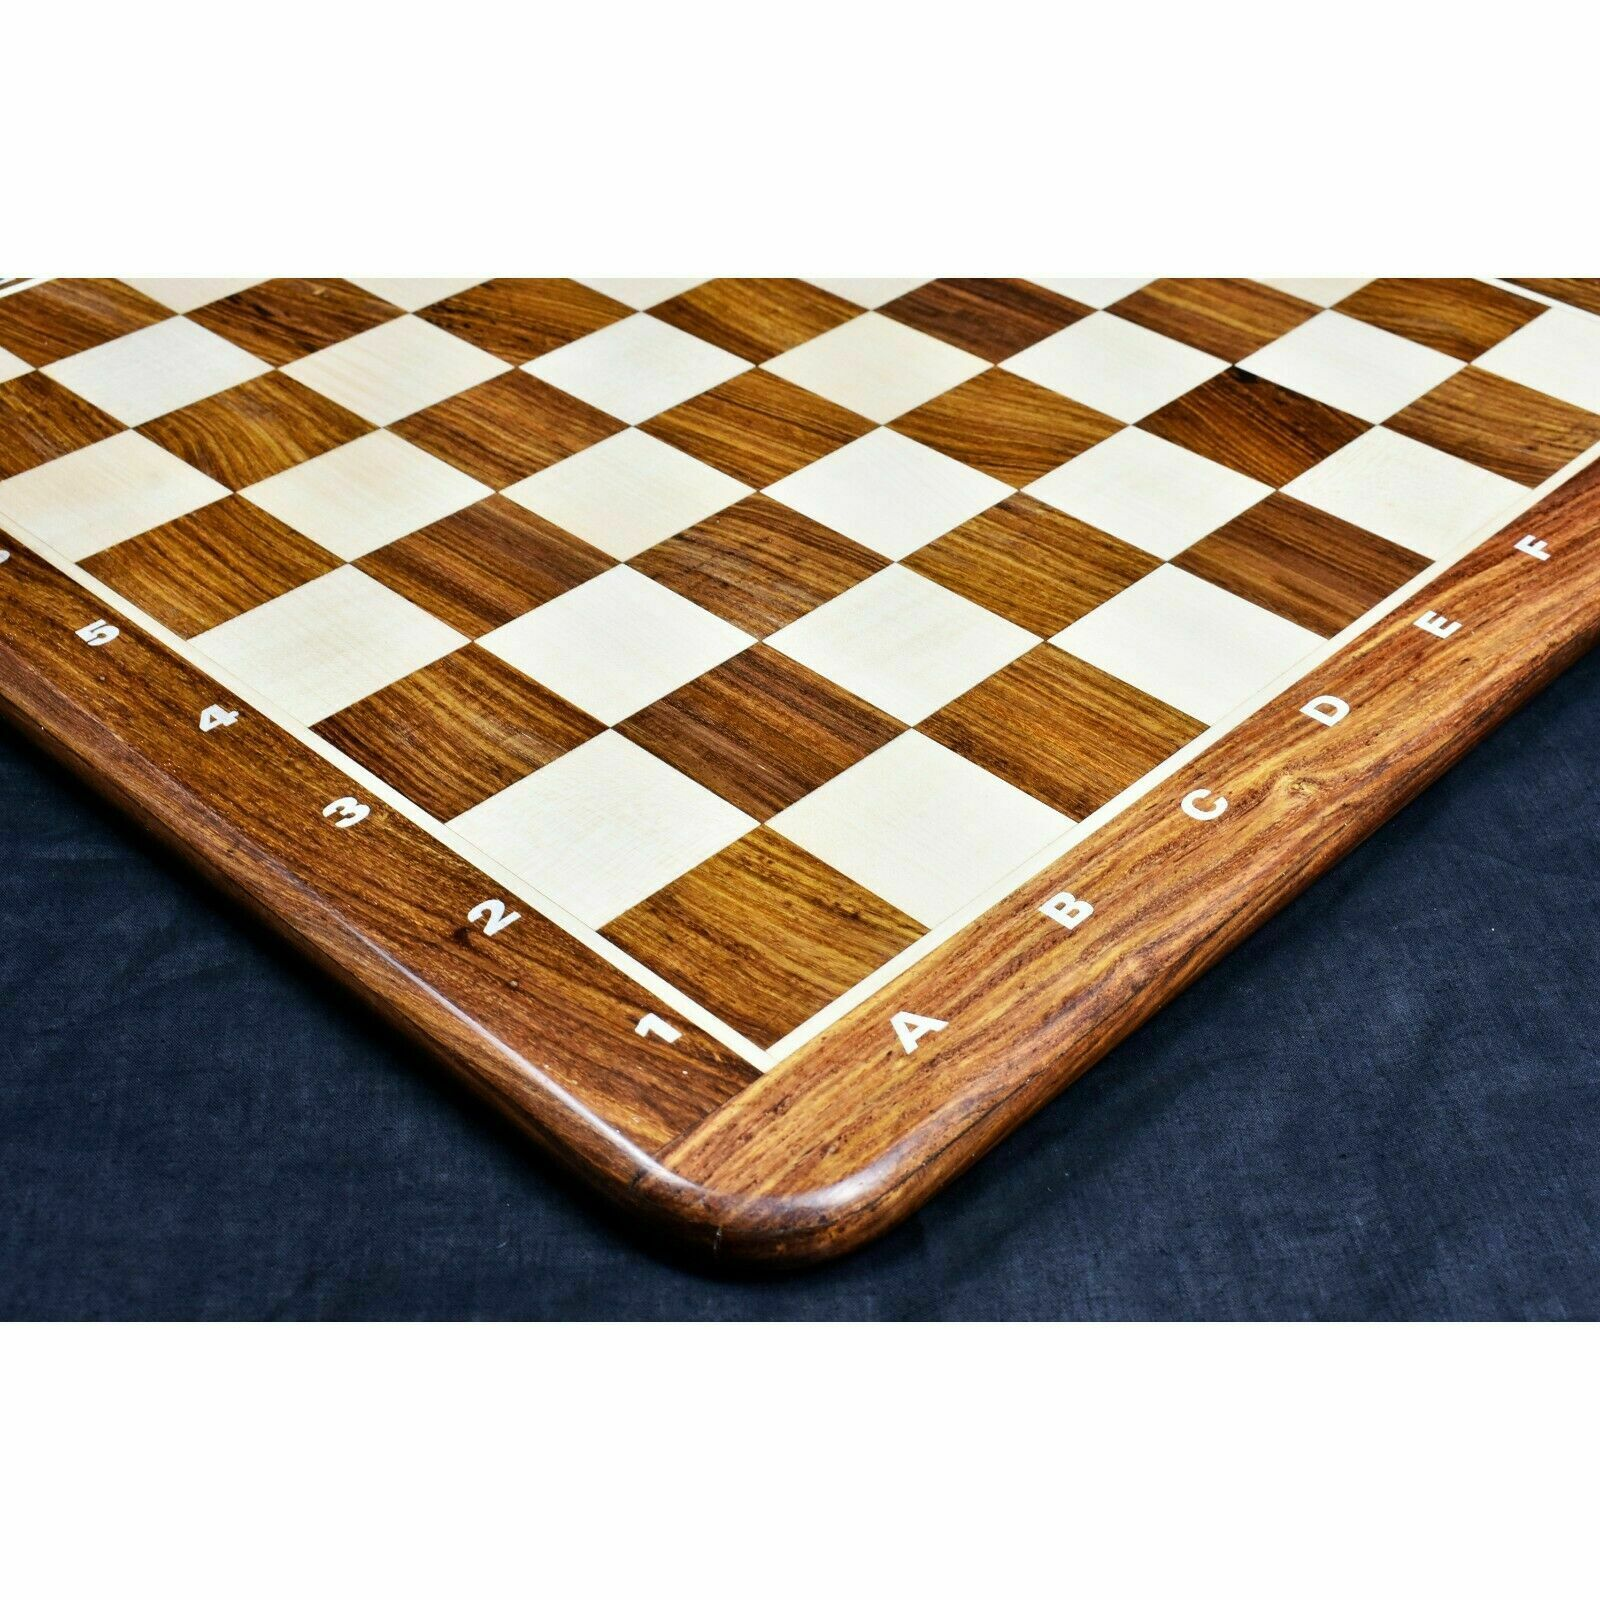 21  Large Chess Board golden pink Wood & Maple 55mm Square - Algebraic Notations